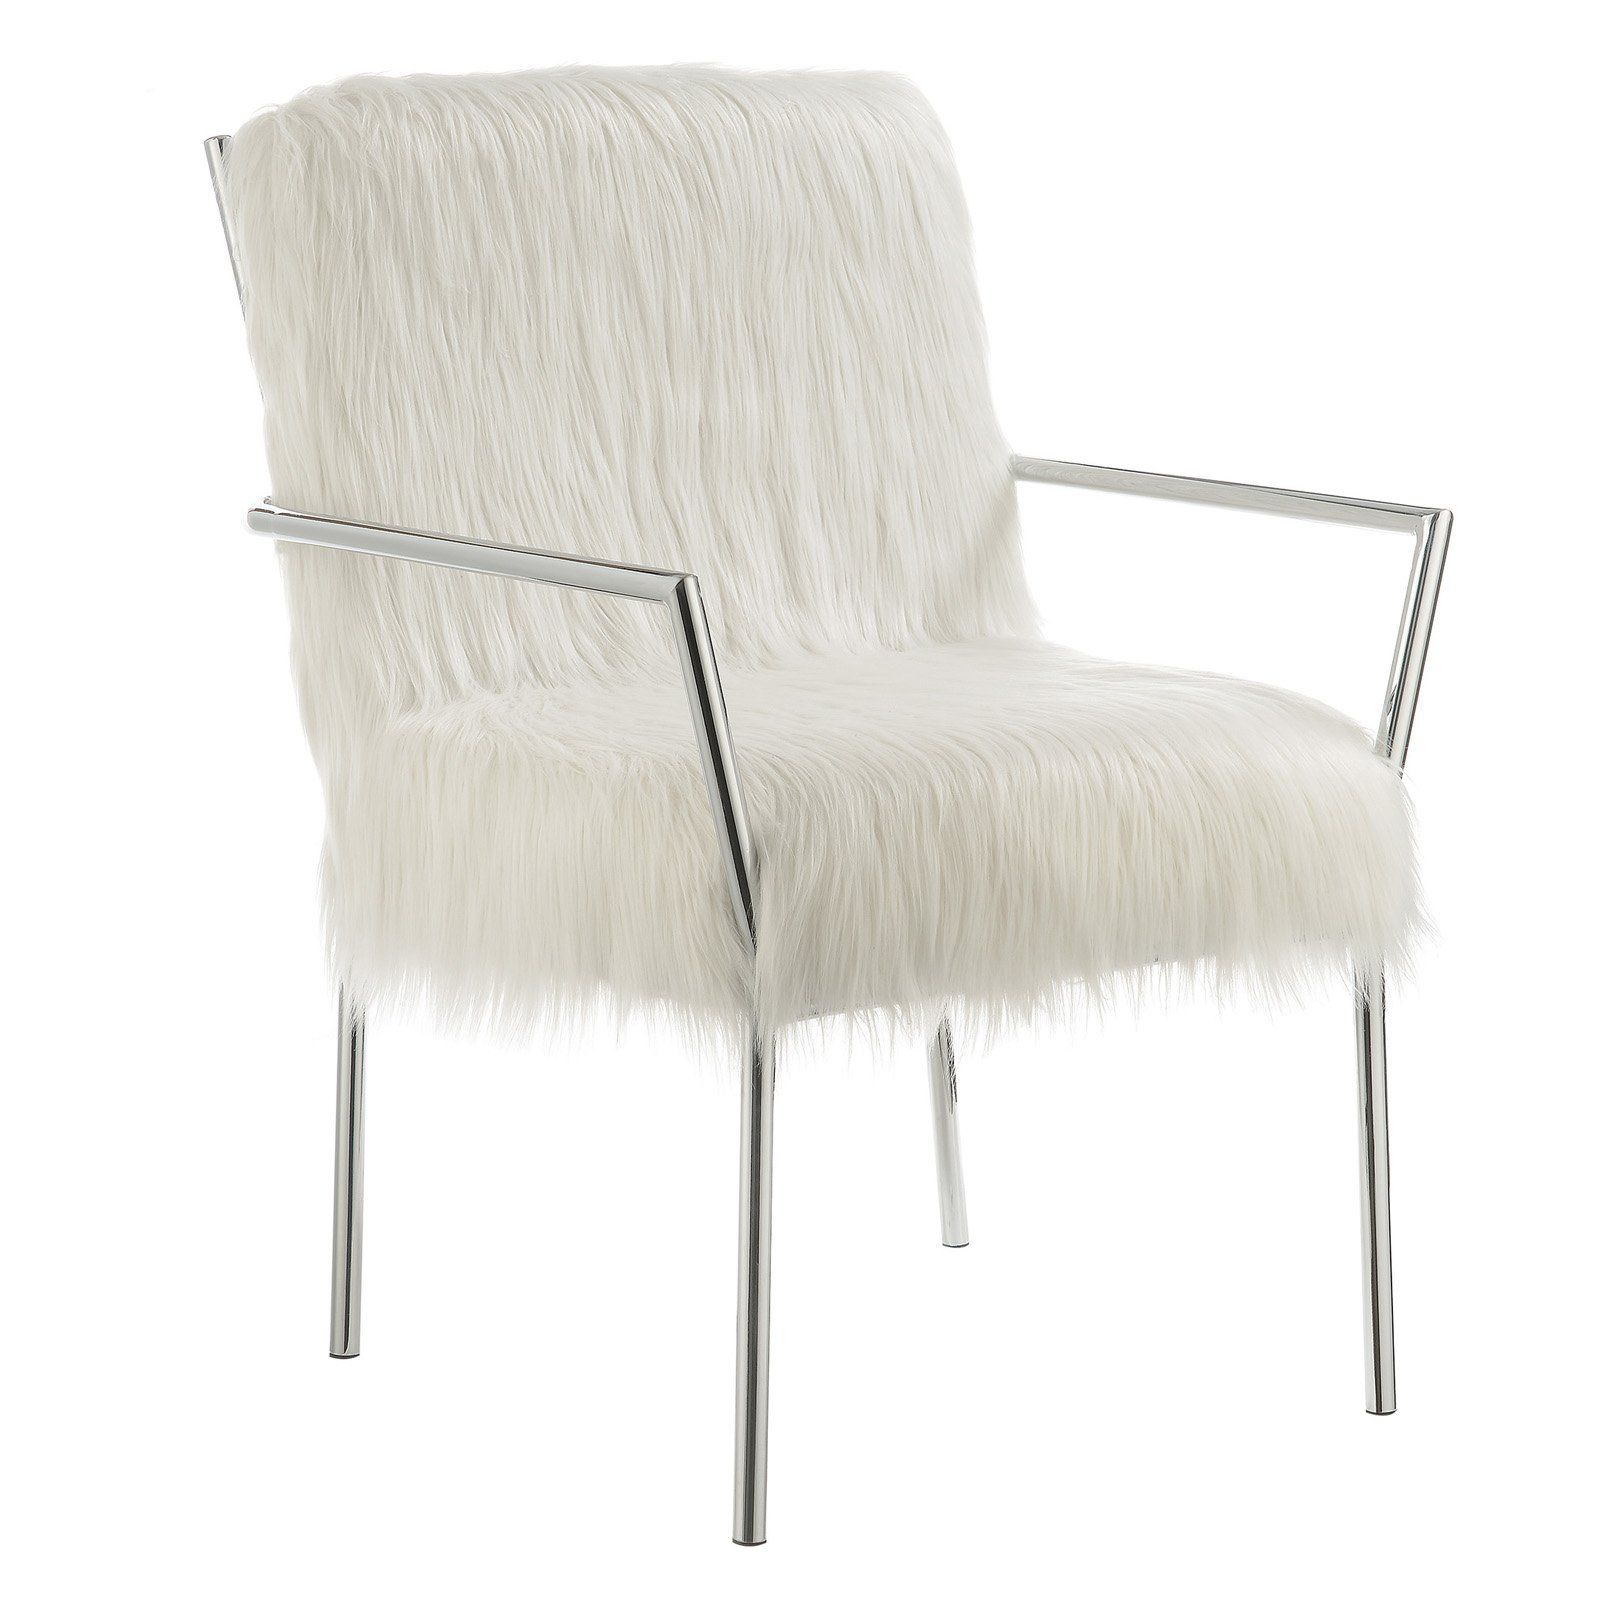 Phenomenal Coaster Furniture Fluffy Metal Accent Chair In 2019 White Andrewgaddart Wooden Chair Designs For Living Room Andrewgaddartcom